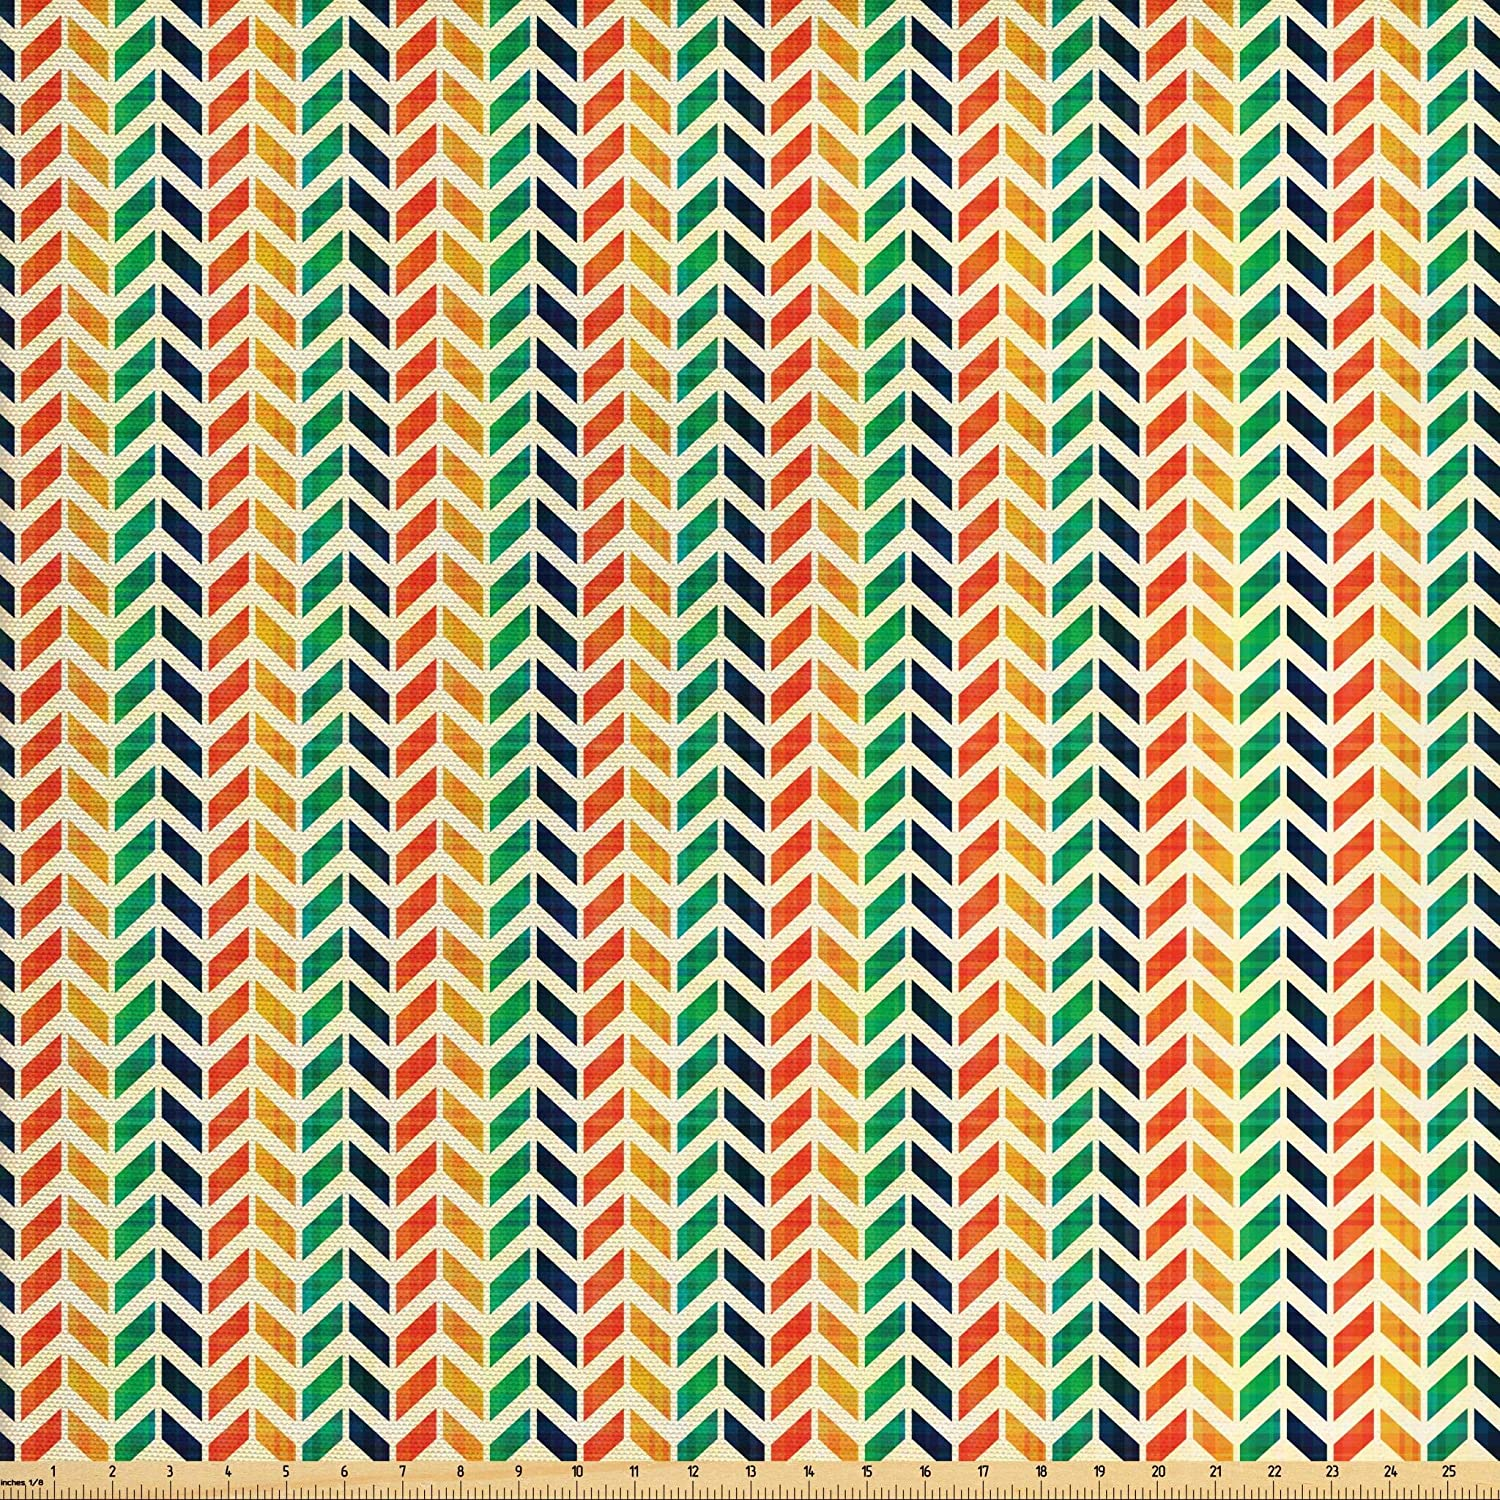 Lunarable Geometric Fabric by The Yard, Modern Chevron Style Rainbow Mixed Colored Image with Bows Abstract Art Print, Decorative Fabric for Upholstery and Home Accents, 2 Yards, Red Green